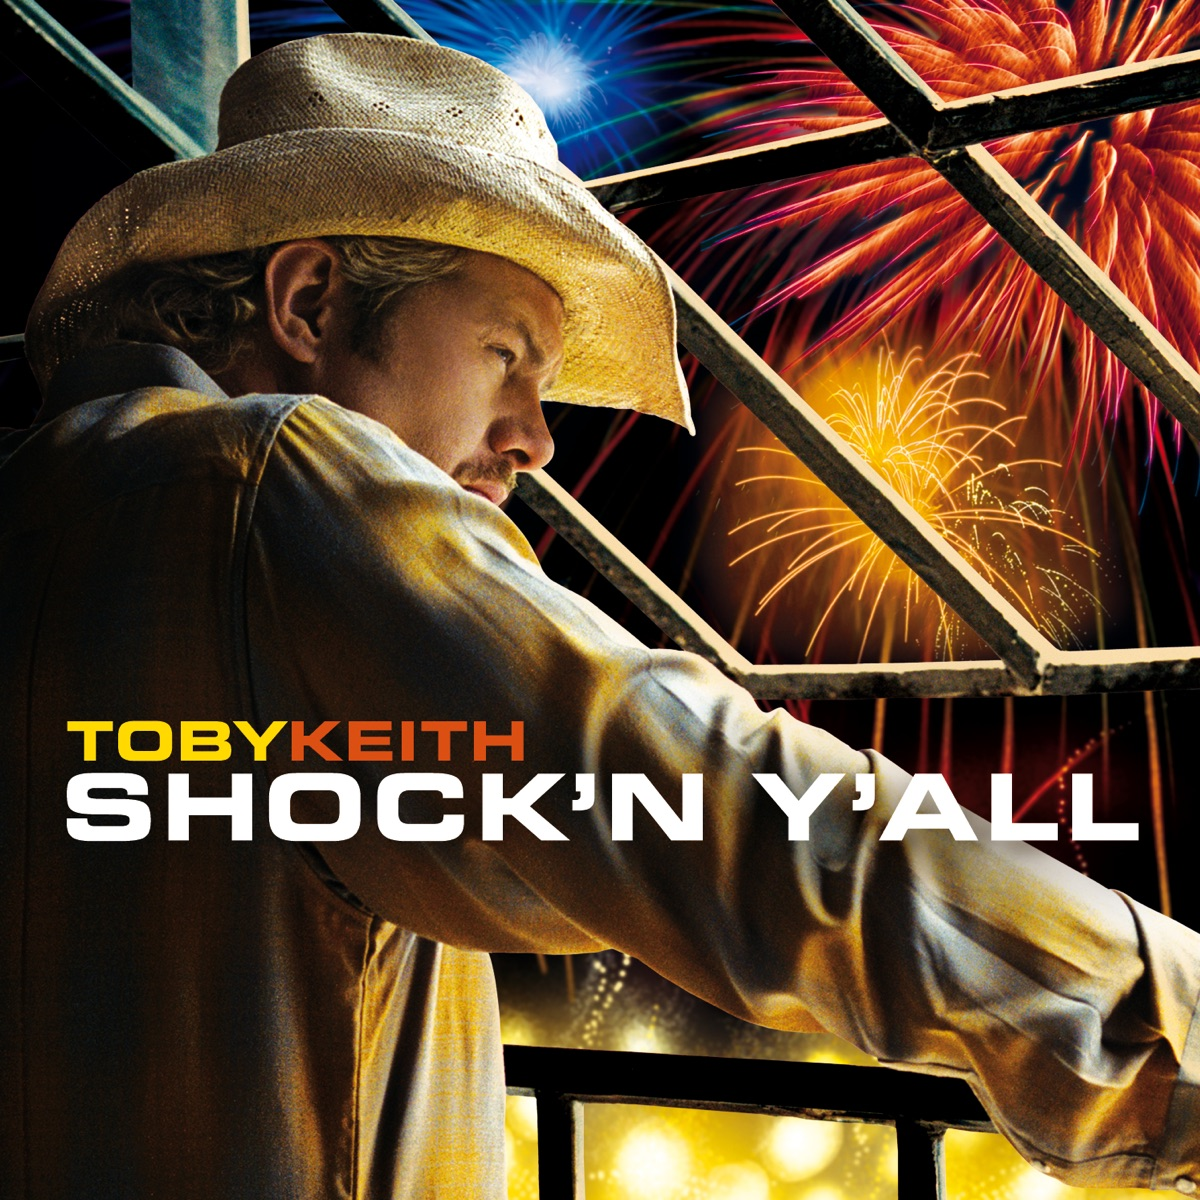 Shock n Yall Toby Keith CD cover